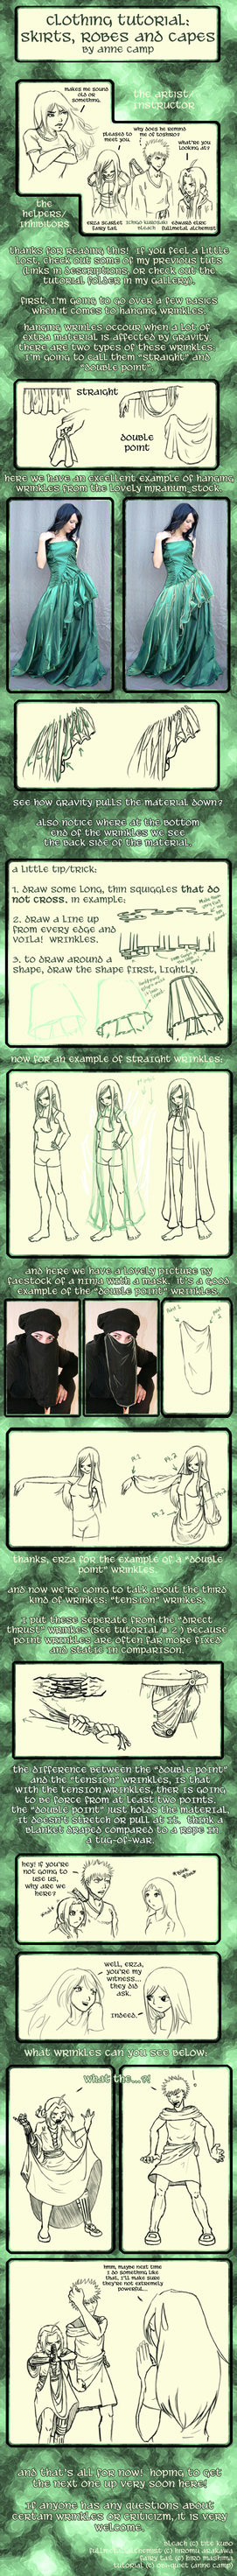 clothing tut 3 hanging wrinkle by obi quiet on deviantart a character